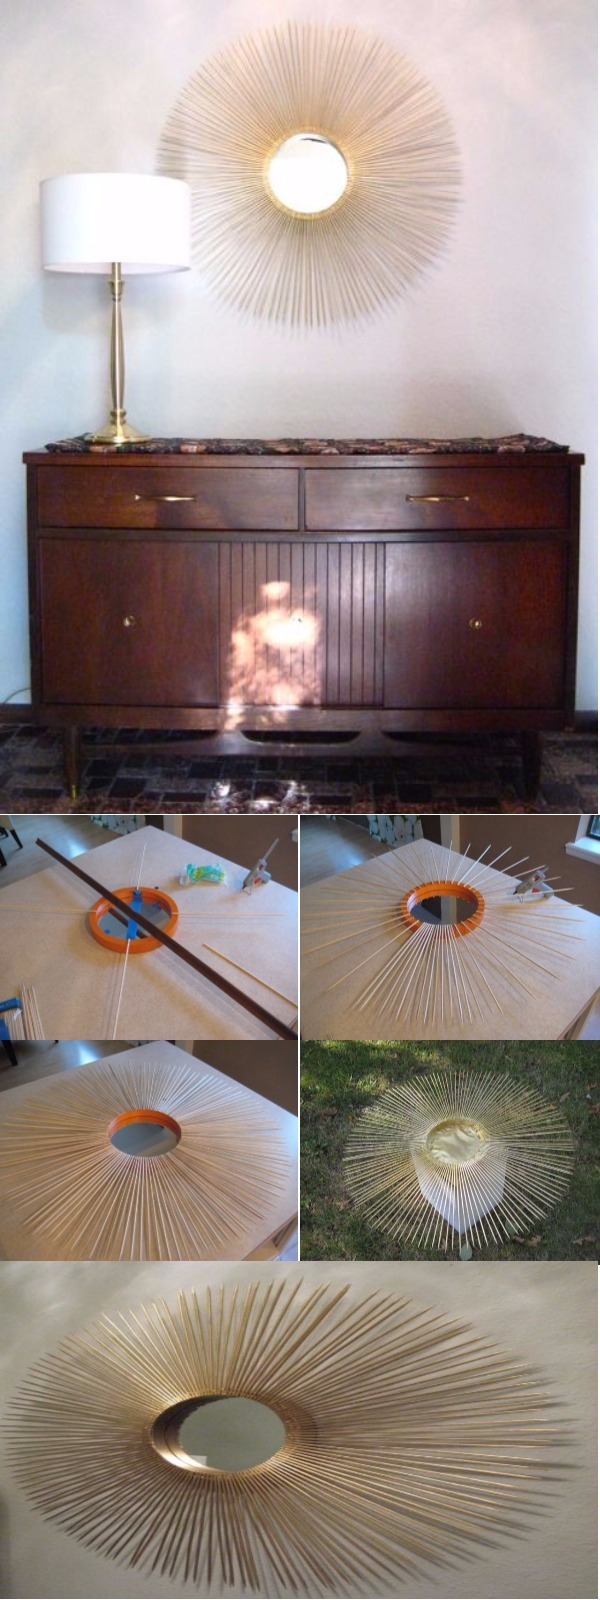 Sunburst Mirror Upcycling Projects To Make Your Home Gorgeous